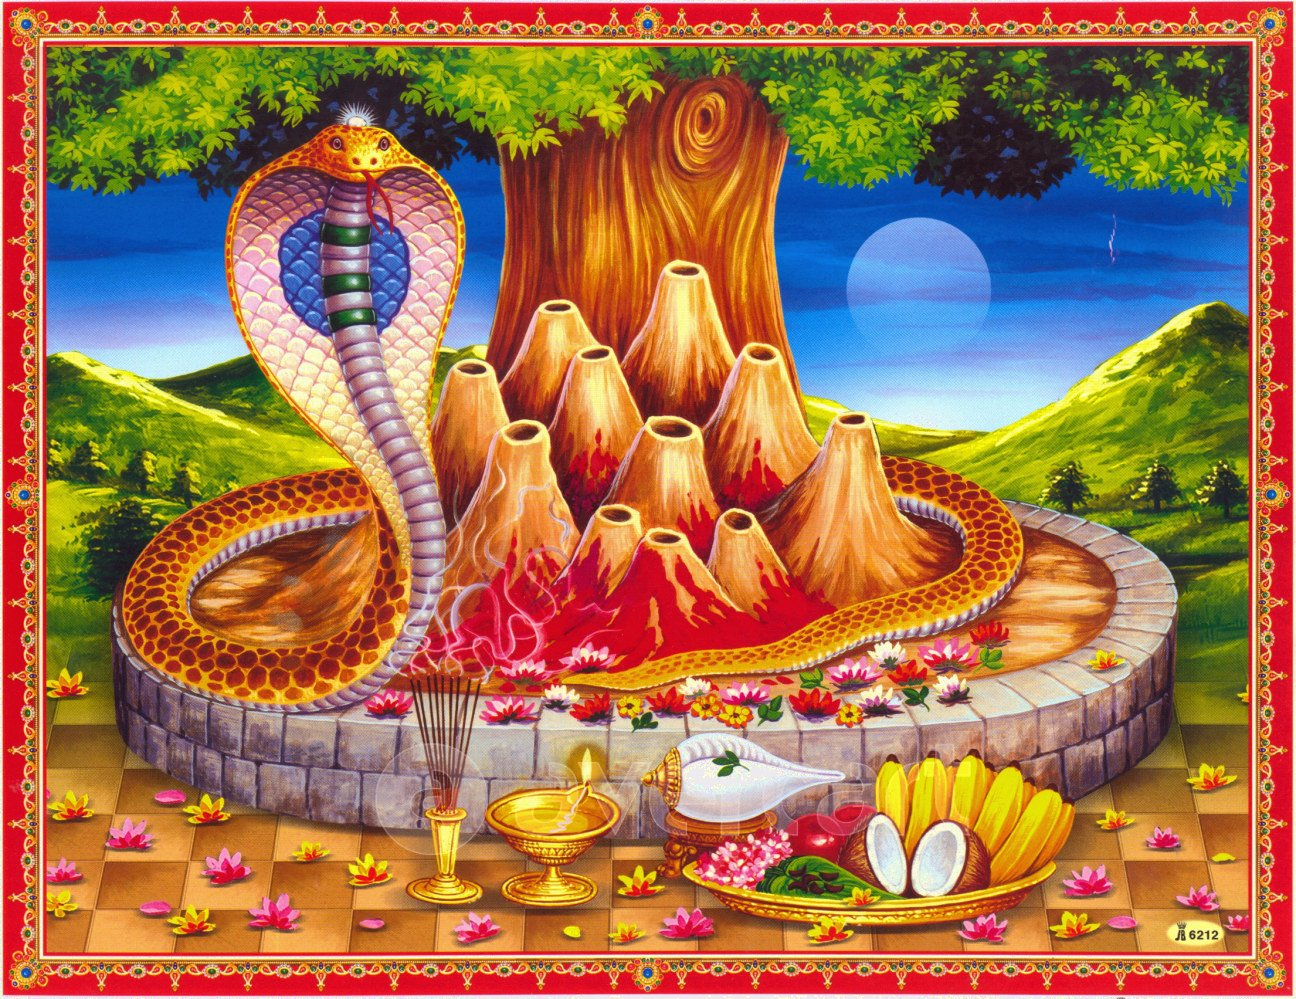 Shubh Nag Panchami Images for free download